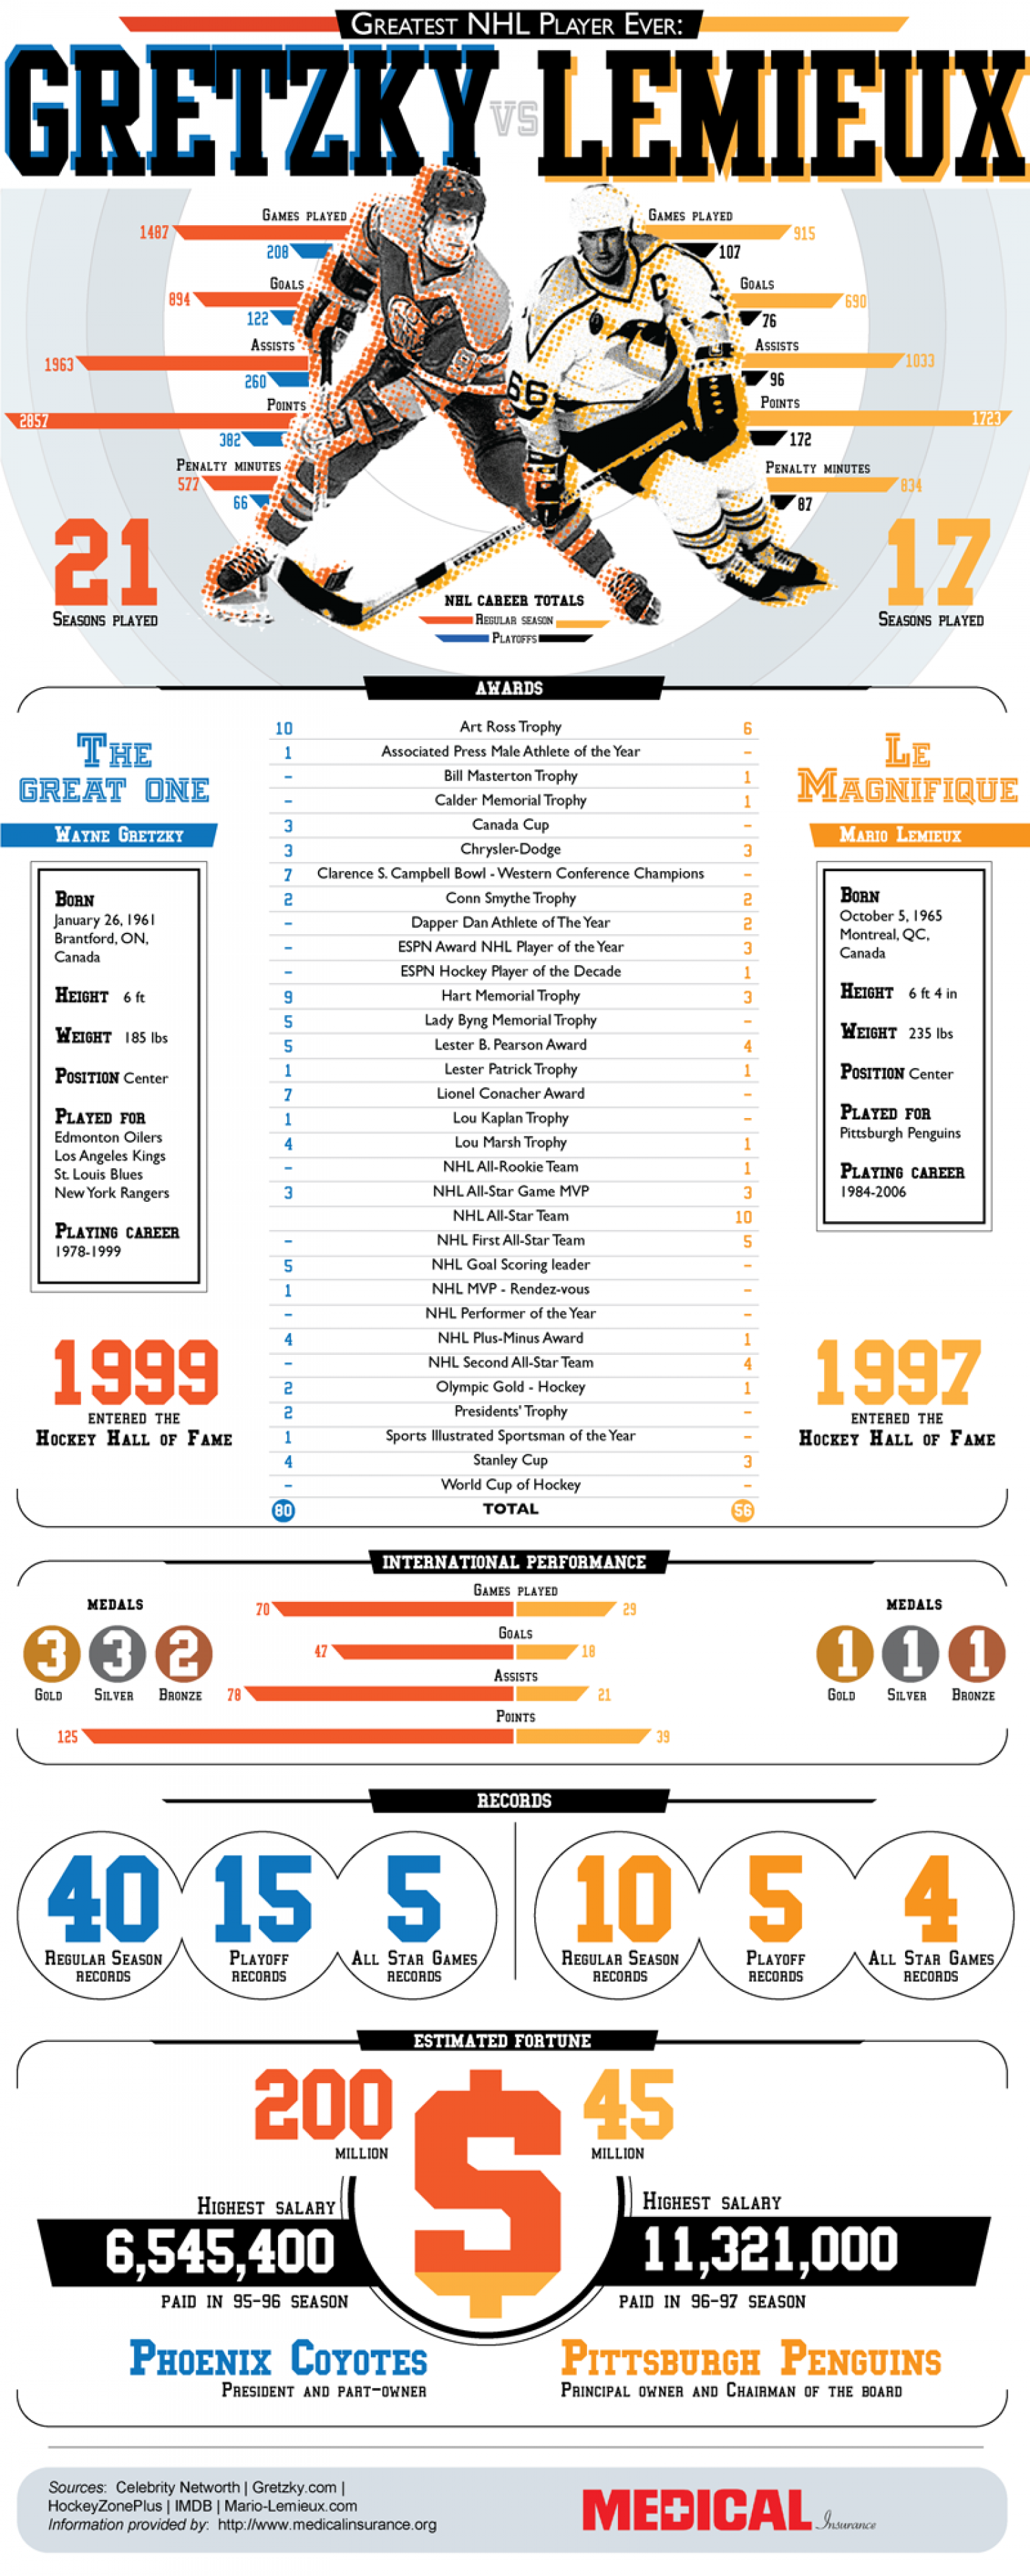 Greatest NHL PLayer Ever: Gretzky vs. Lemieux Infographic